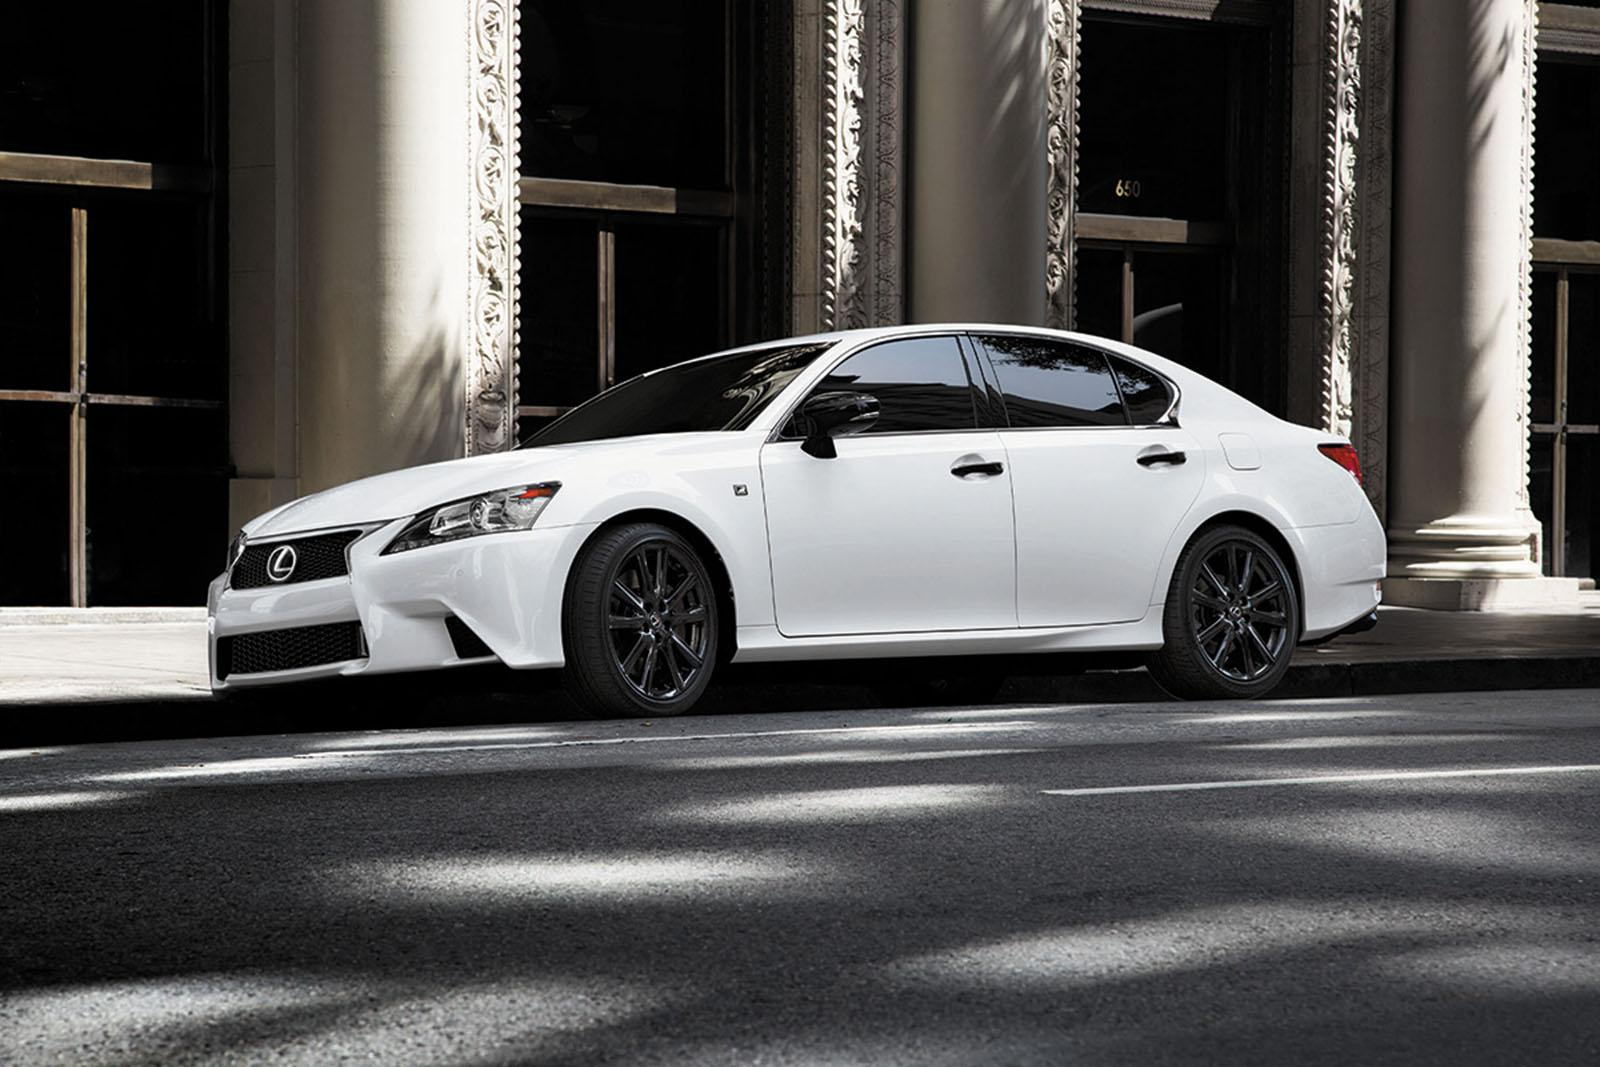 Lexus Announces Crafted Line Of Special Edition For Pebble